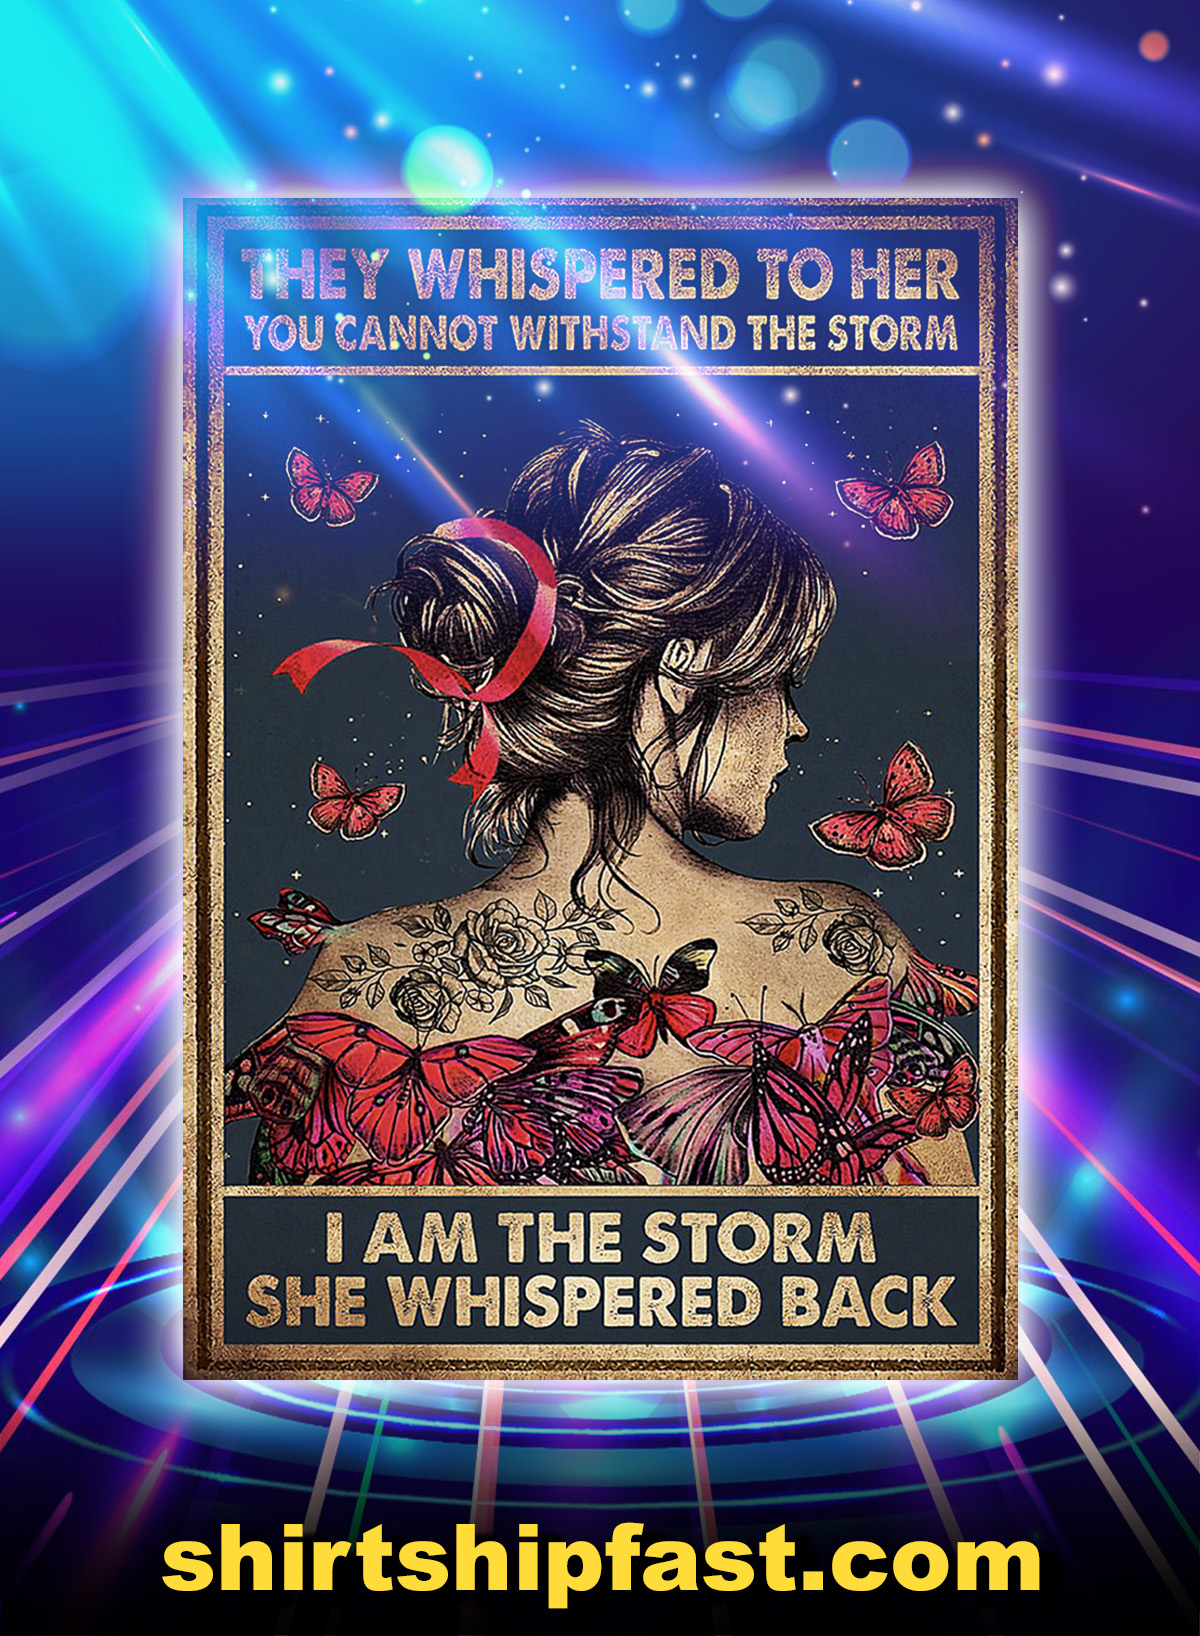 Breast cancer butterfly they whispered to her poster - A1